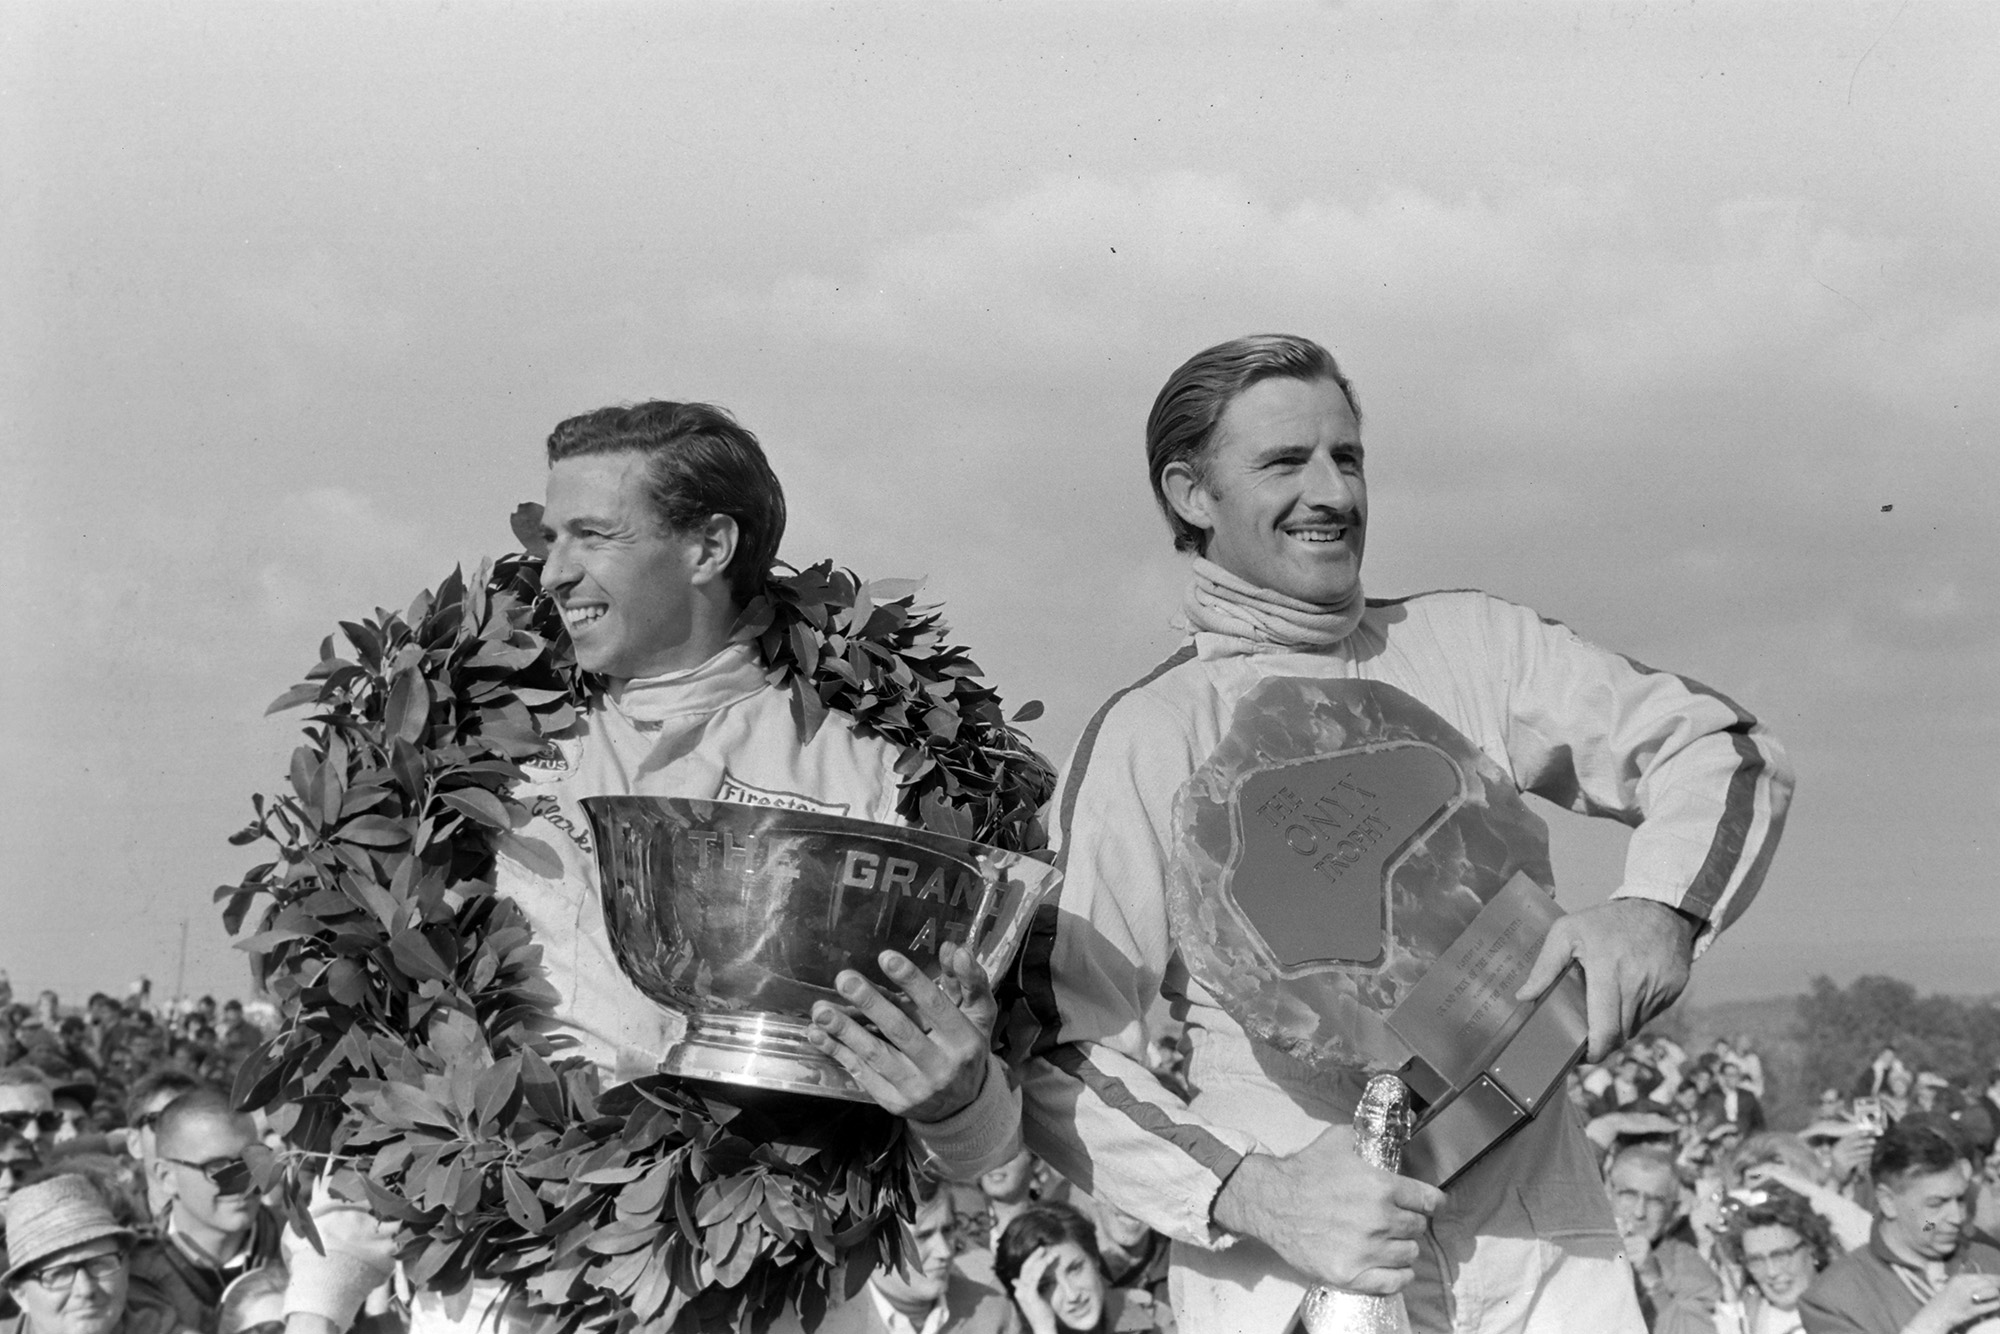 Jim Clark and Graham Hill